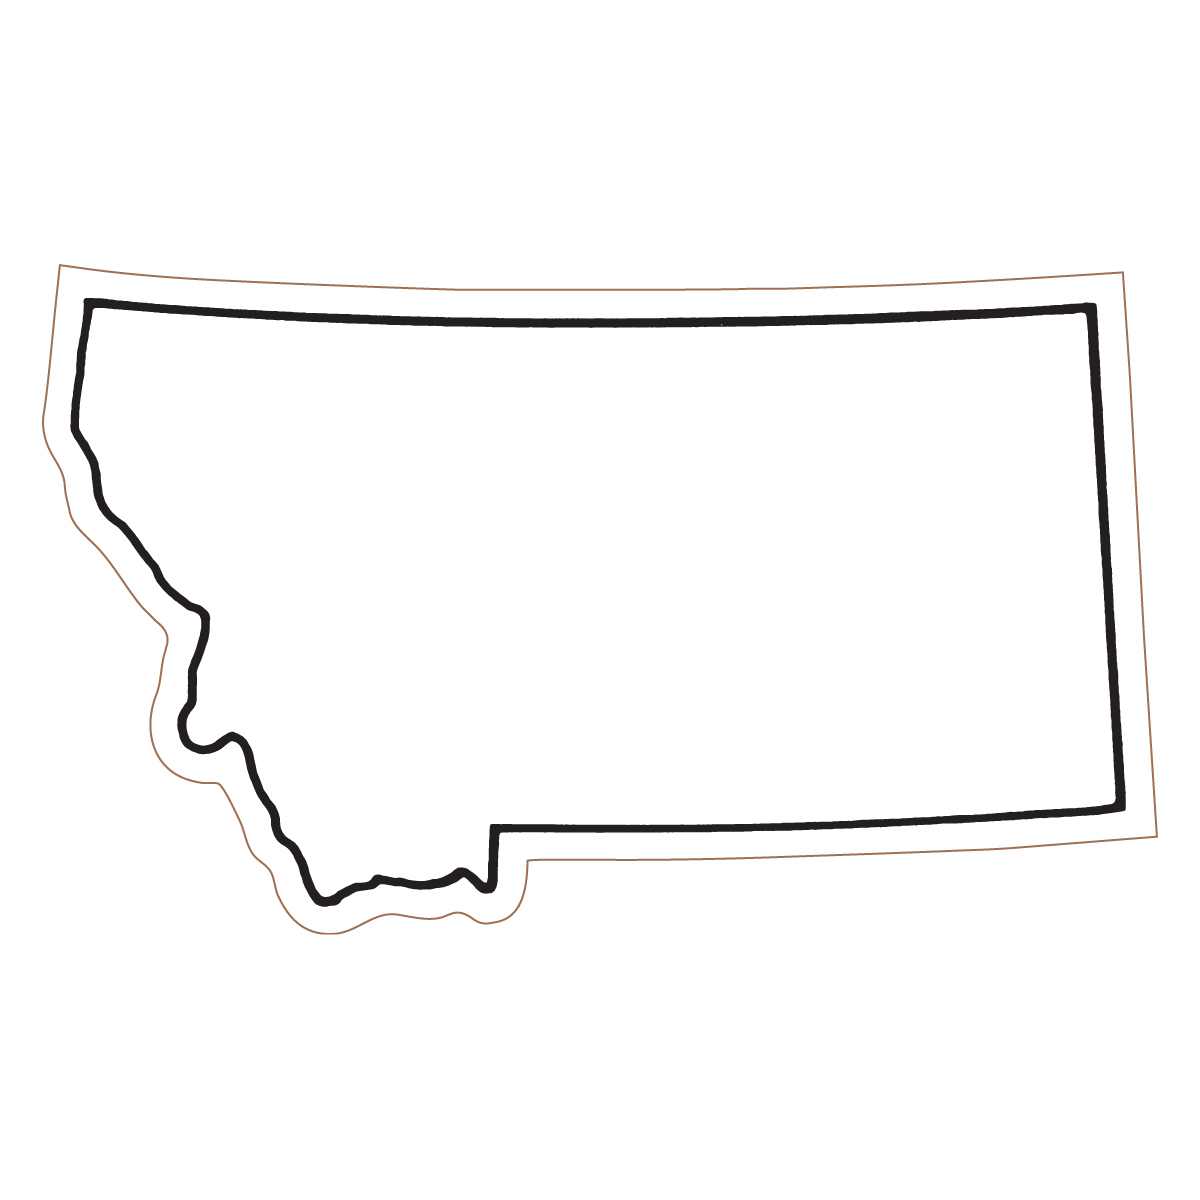 Pix For > Montana State Outline - ClipArt Best - ClipArt Best